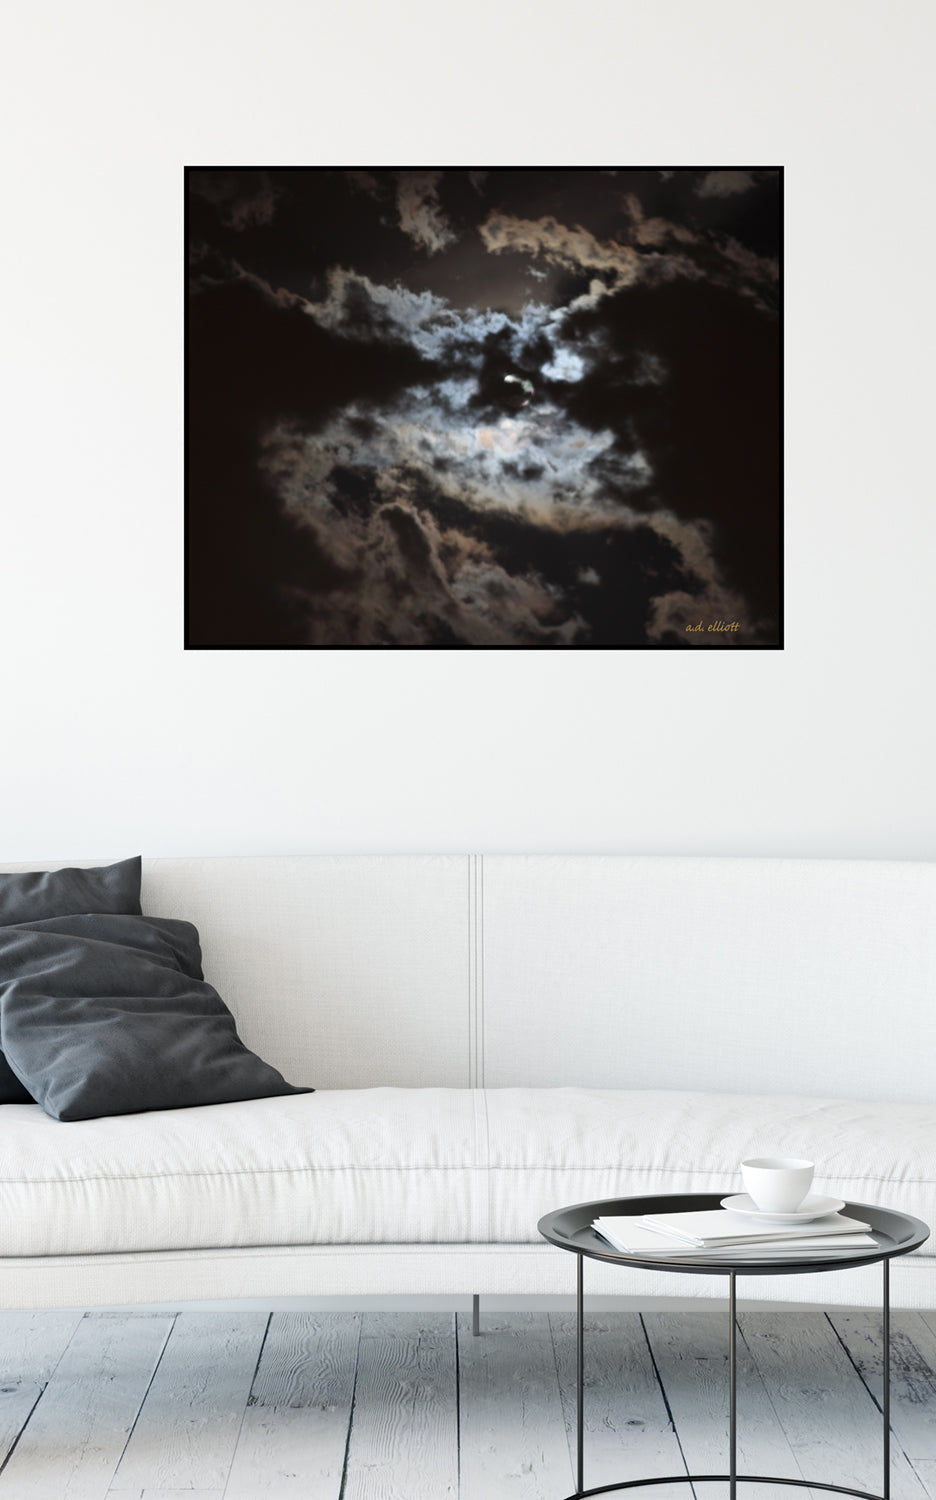 A photograph of the moon obscured behind clouds taken by the Arkansas photographer a.d. elliott.  Printed on high quality, artist-grade stock and folded around a lightweight frame to give them a gorgeous, gallery-ready appearance. With acid-free ink that will last without fading or chipping, Features a scratch-resistant UV coating. Wipes clean easily with a damp cloth or to remove dust, vacuum gently using a soft brush attachment.